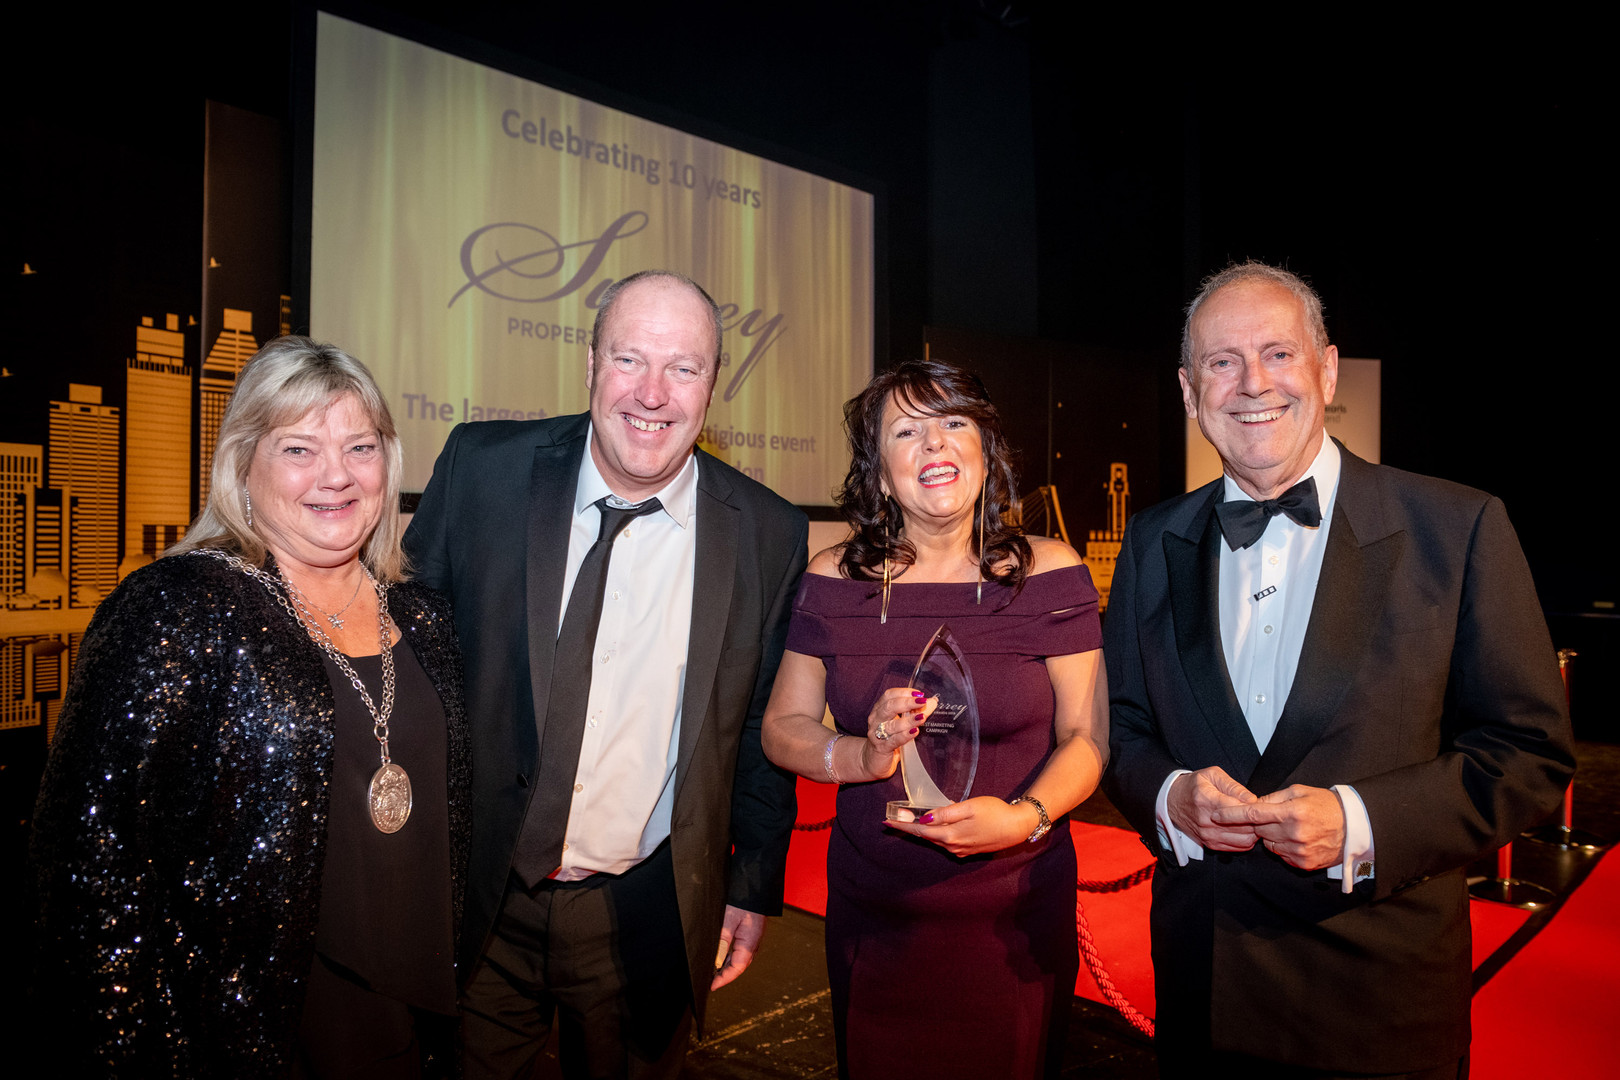 SurreyPropertyAwards_Nov2019_376.jpg